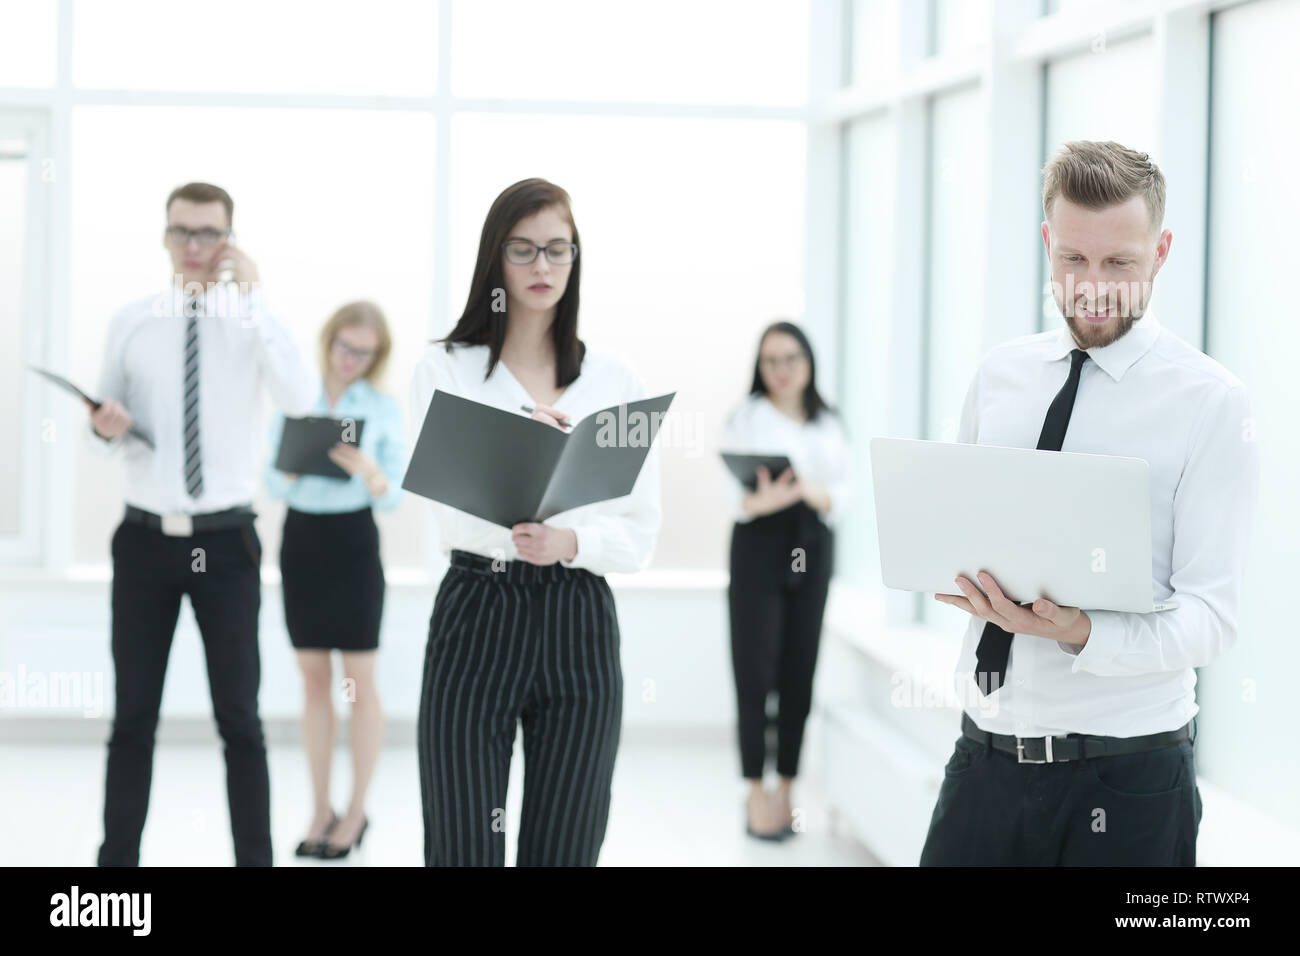 business team standing in the office hall before the business presentation. - Stock Image